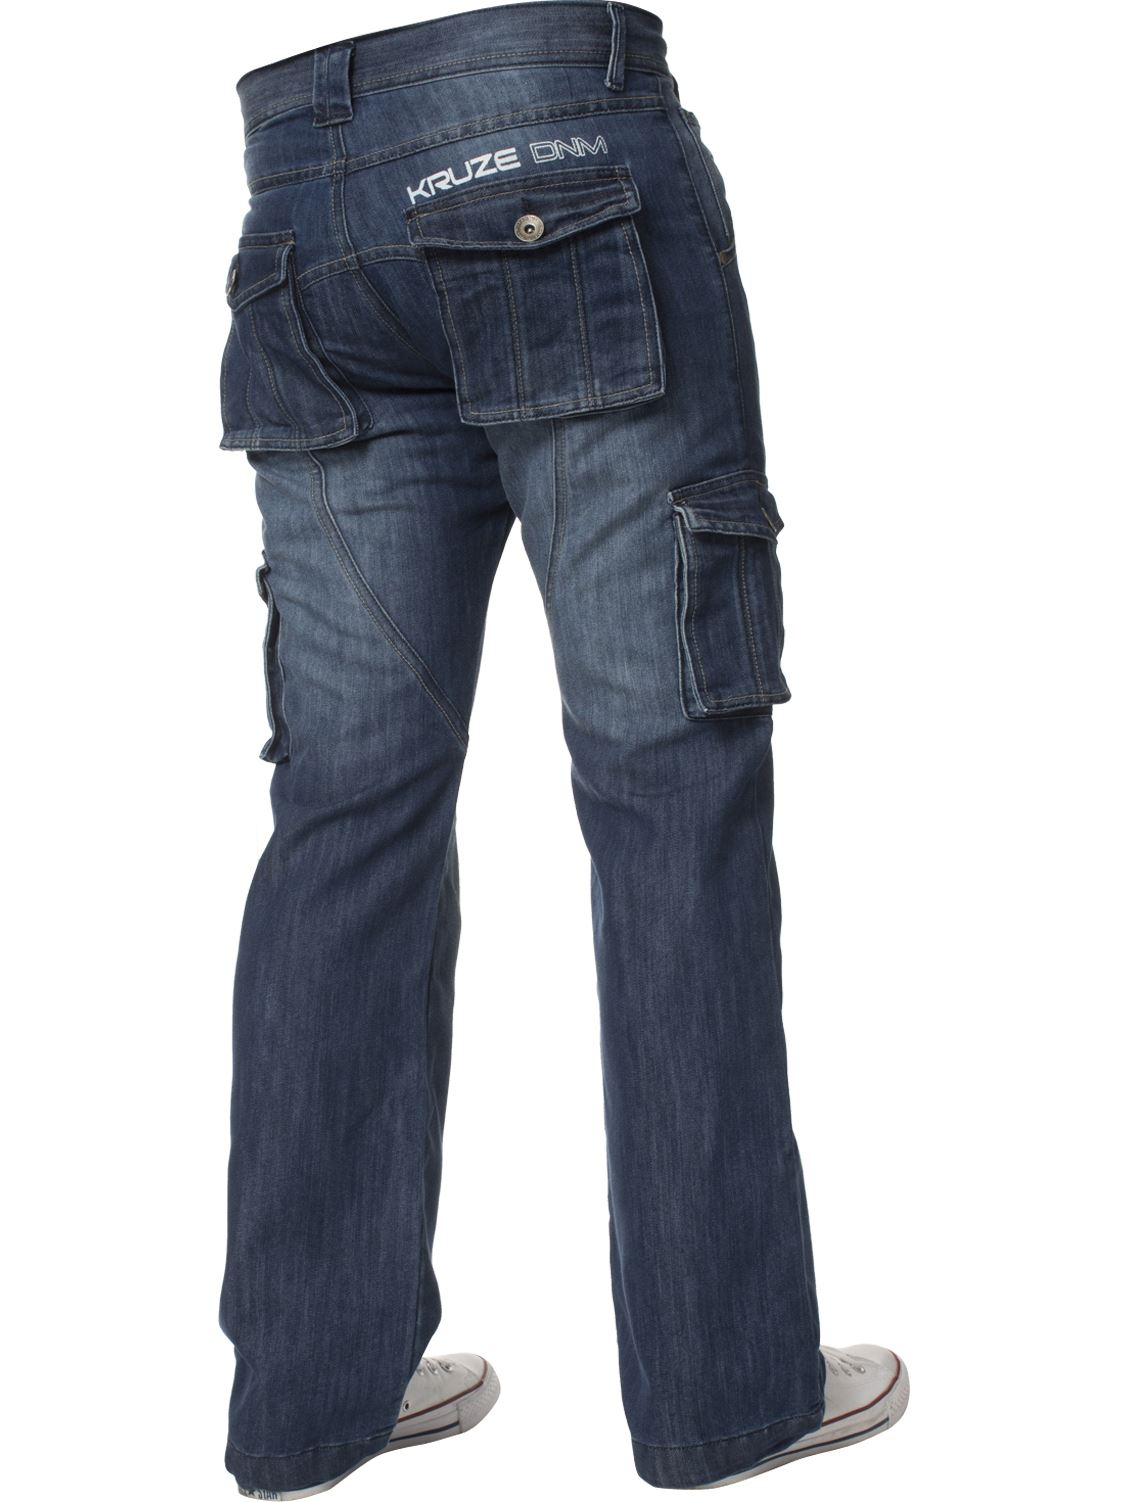 Mens-Cargo-Combat-Trousers-Jeans-Heavy-Duty-Work-Casual-Pants-Big-Tall-All-Sizes thumbnail 29